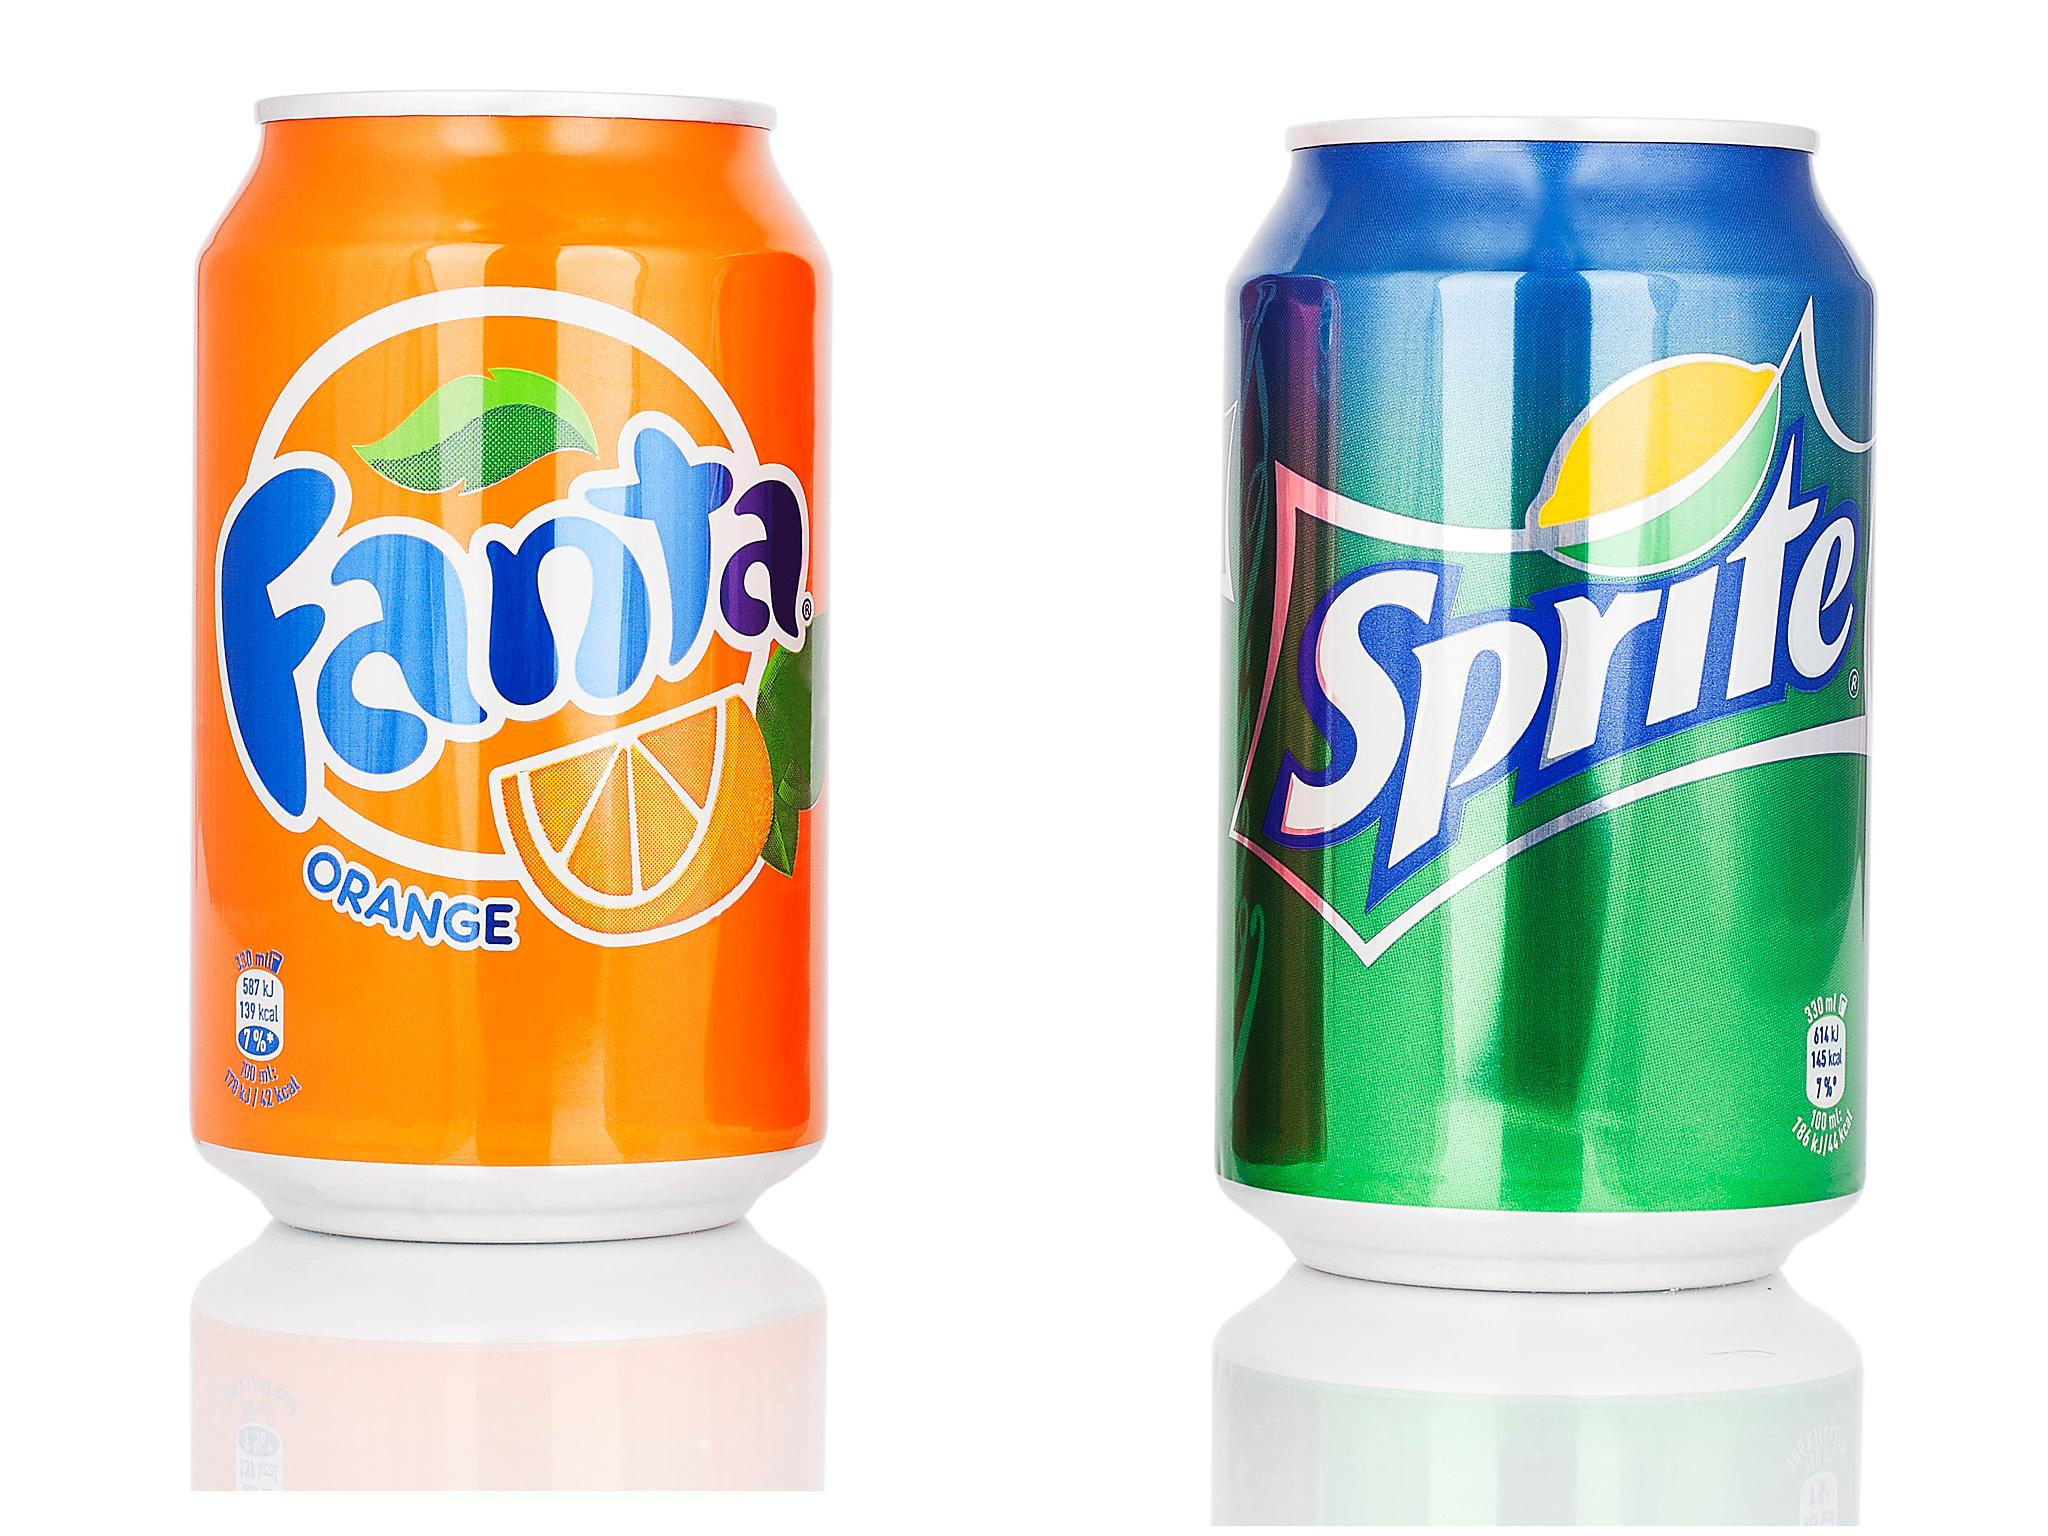 Coca-cola's Products Sprite And Fanta May Be poisonous, Rules Nigeria Court photo